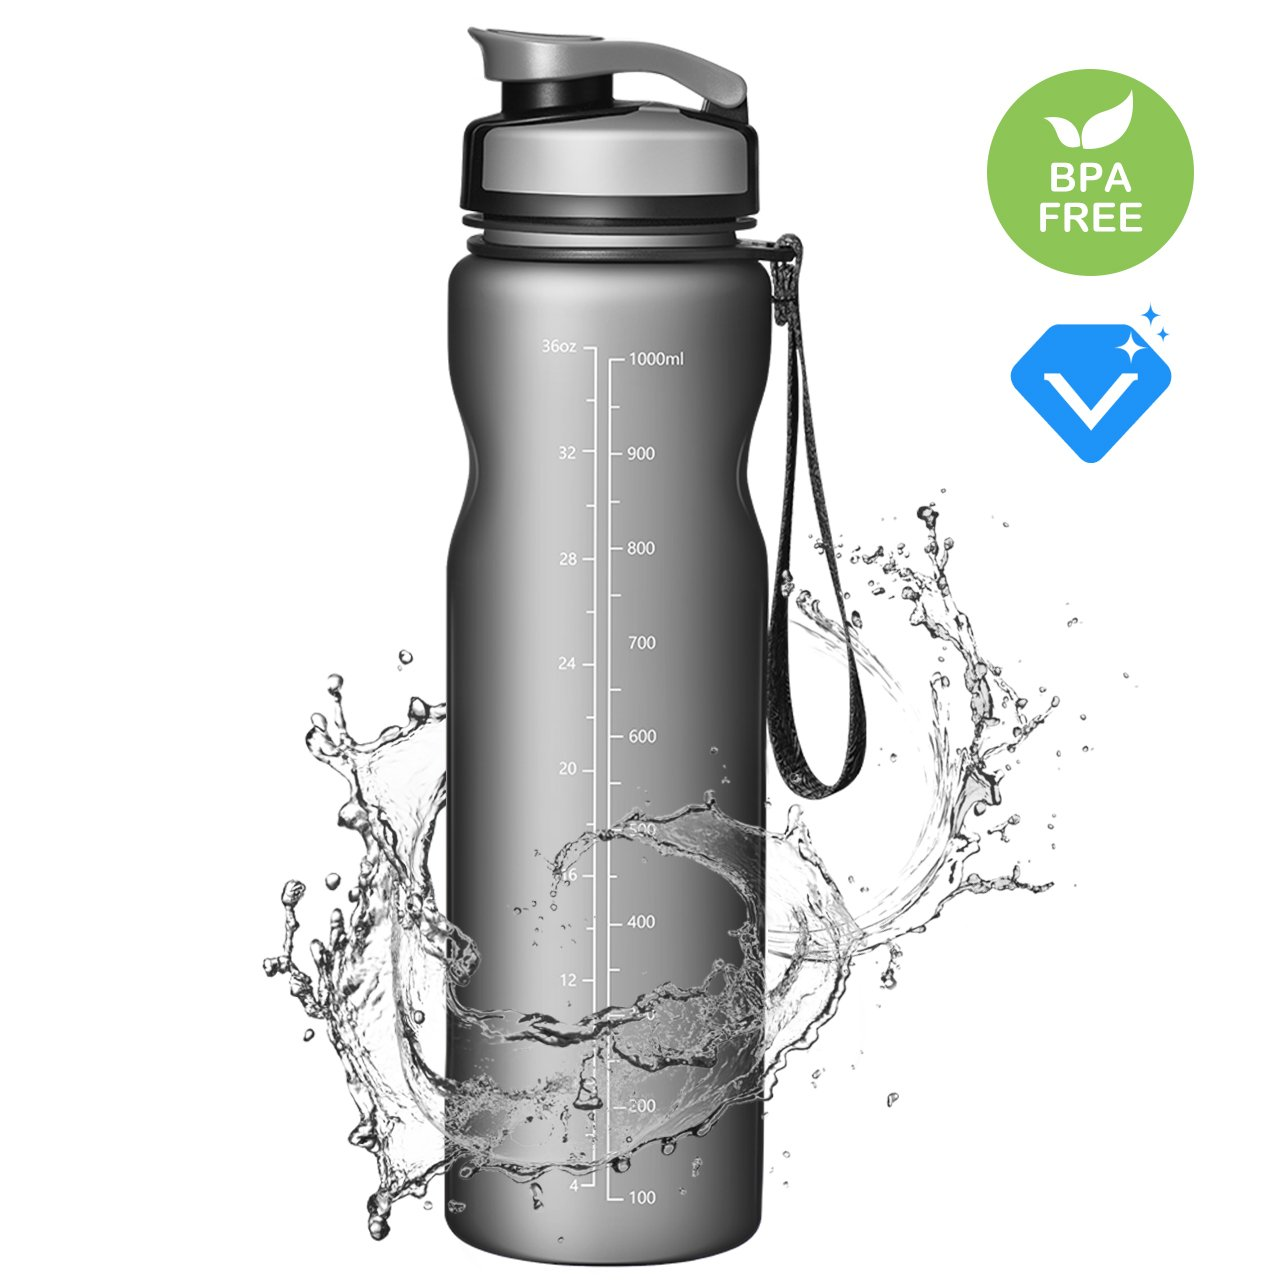 OMORC Sport Water Bottle 1 Liter/600 ml [2019 New, Leakproof & BPA-Free] Wide Mouth Flip Cap Eco-Friendly Quality for Yoga, Gym, Travel, Hiking, Cycling, Camping and Other Indoor, Outdoor Sports